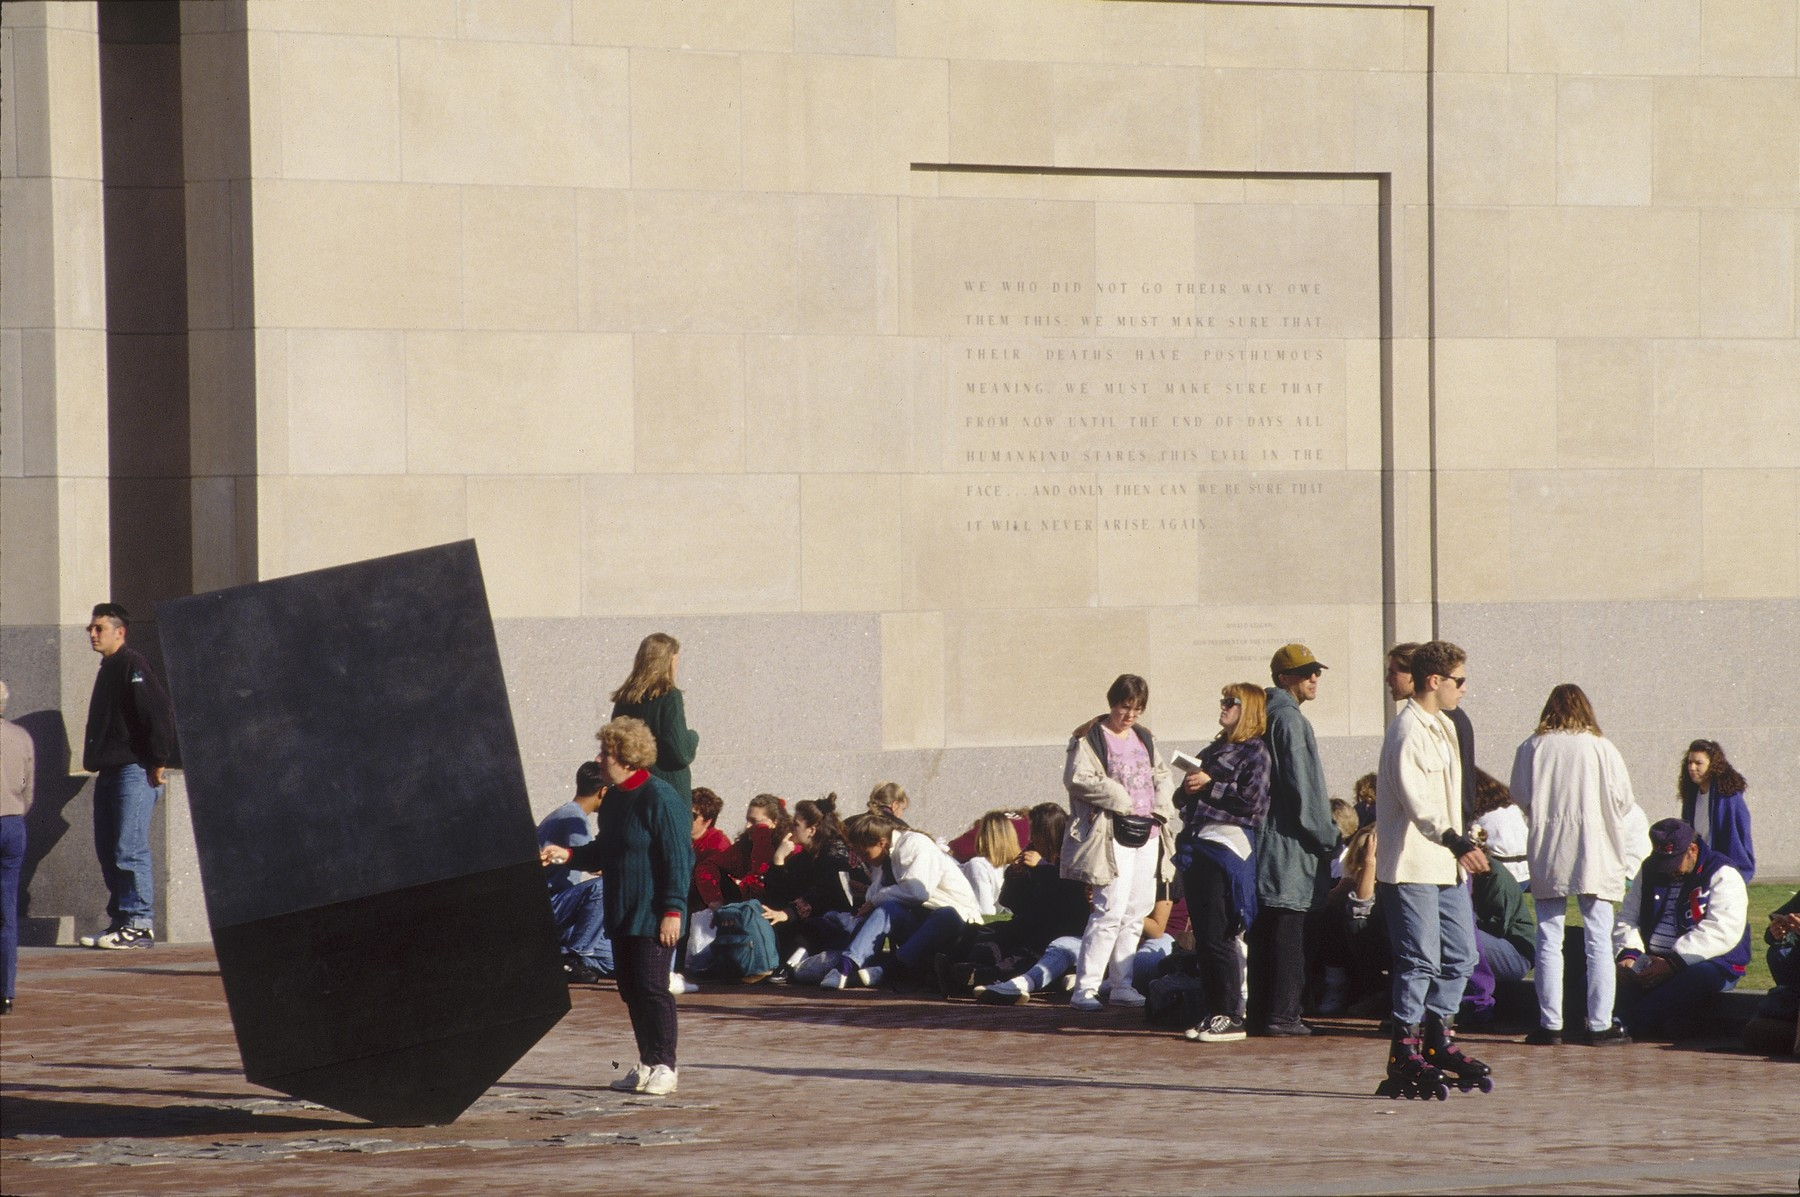 Visitors wait outside the 15th Street entrance to the U.S. Holocaust Memorial Museum.